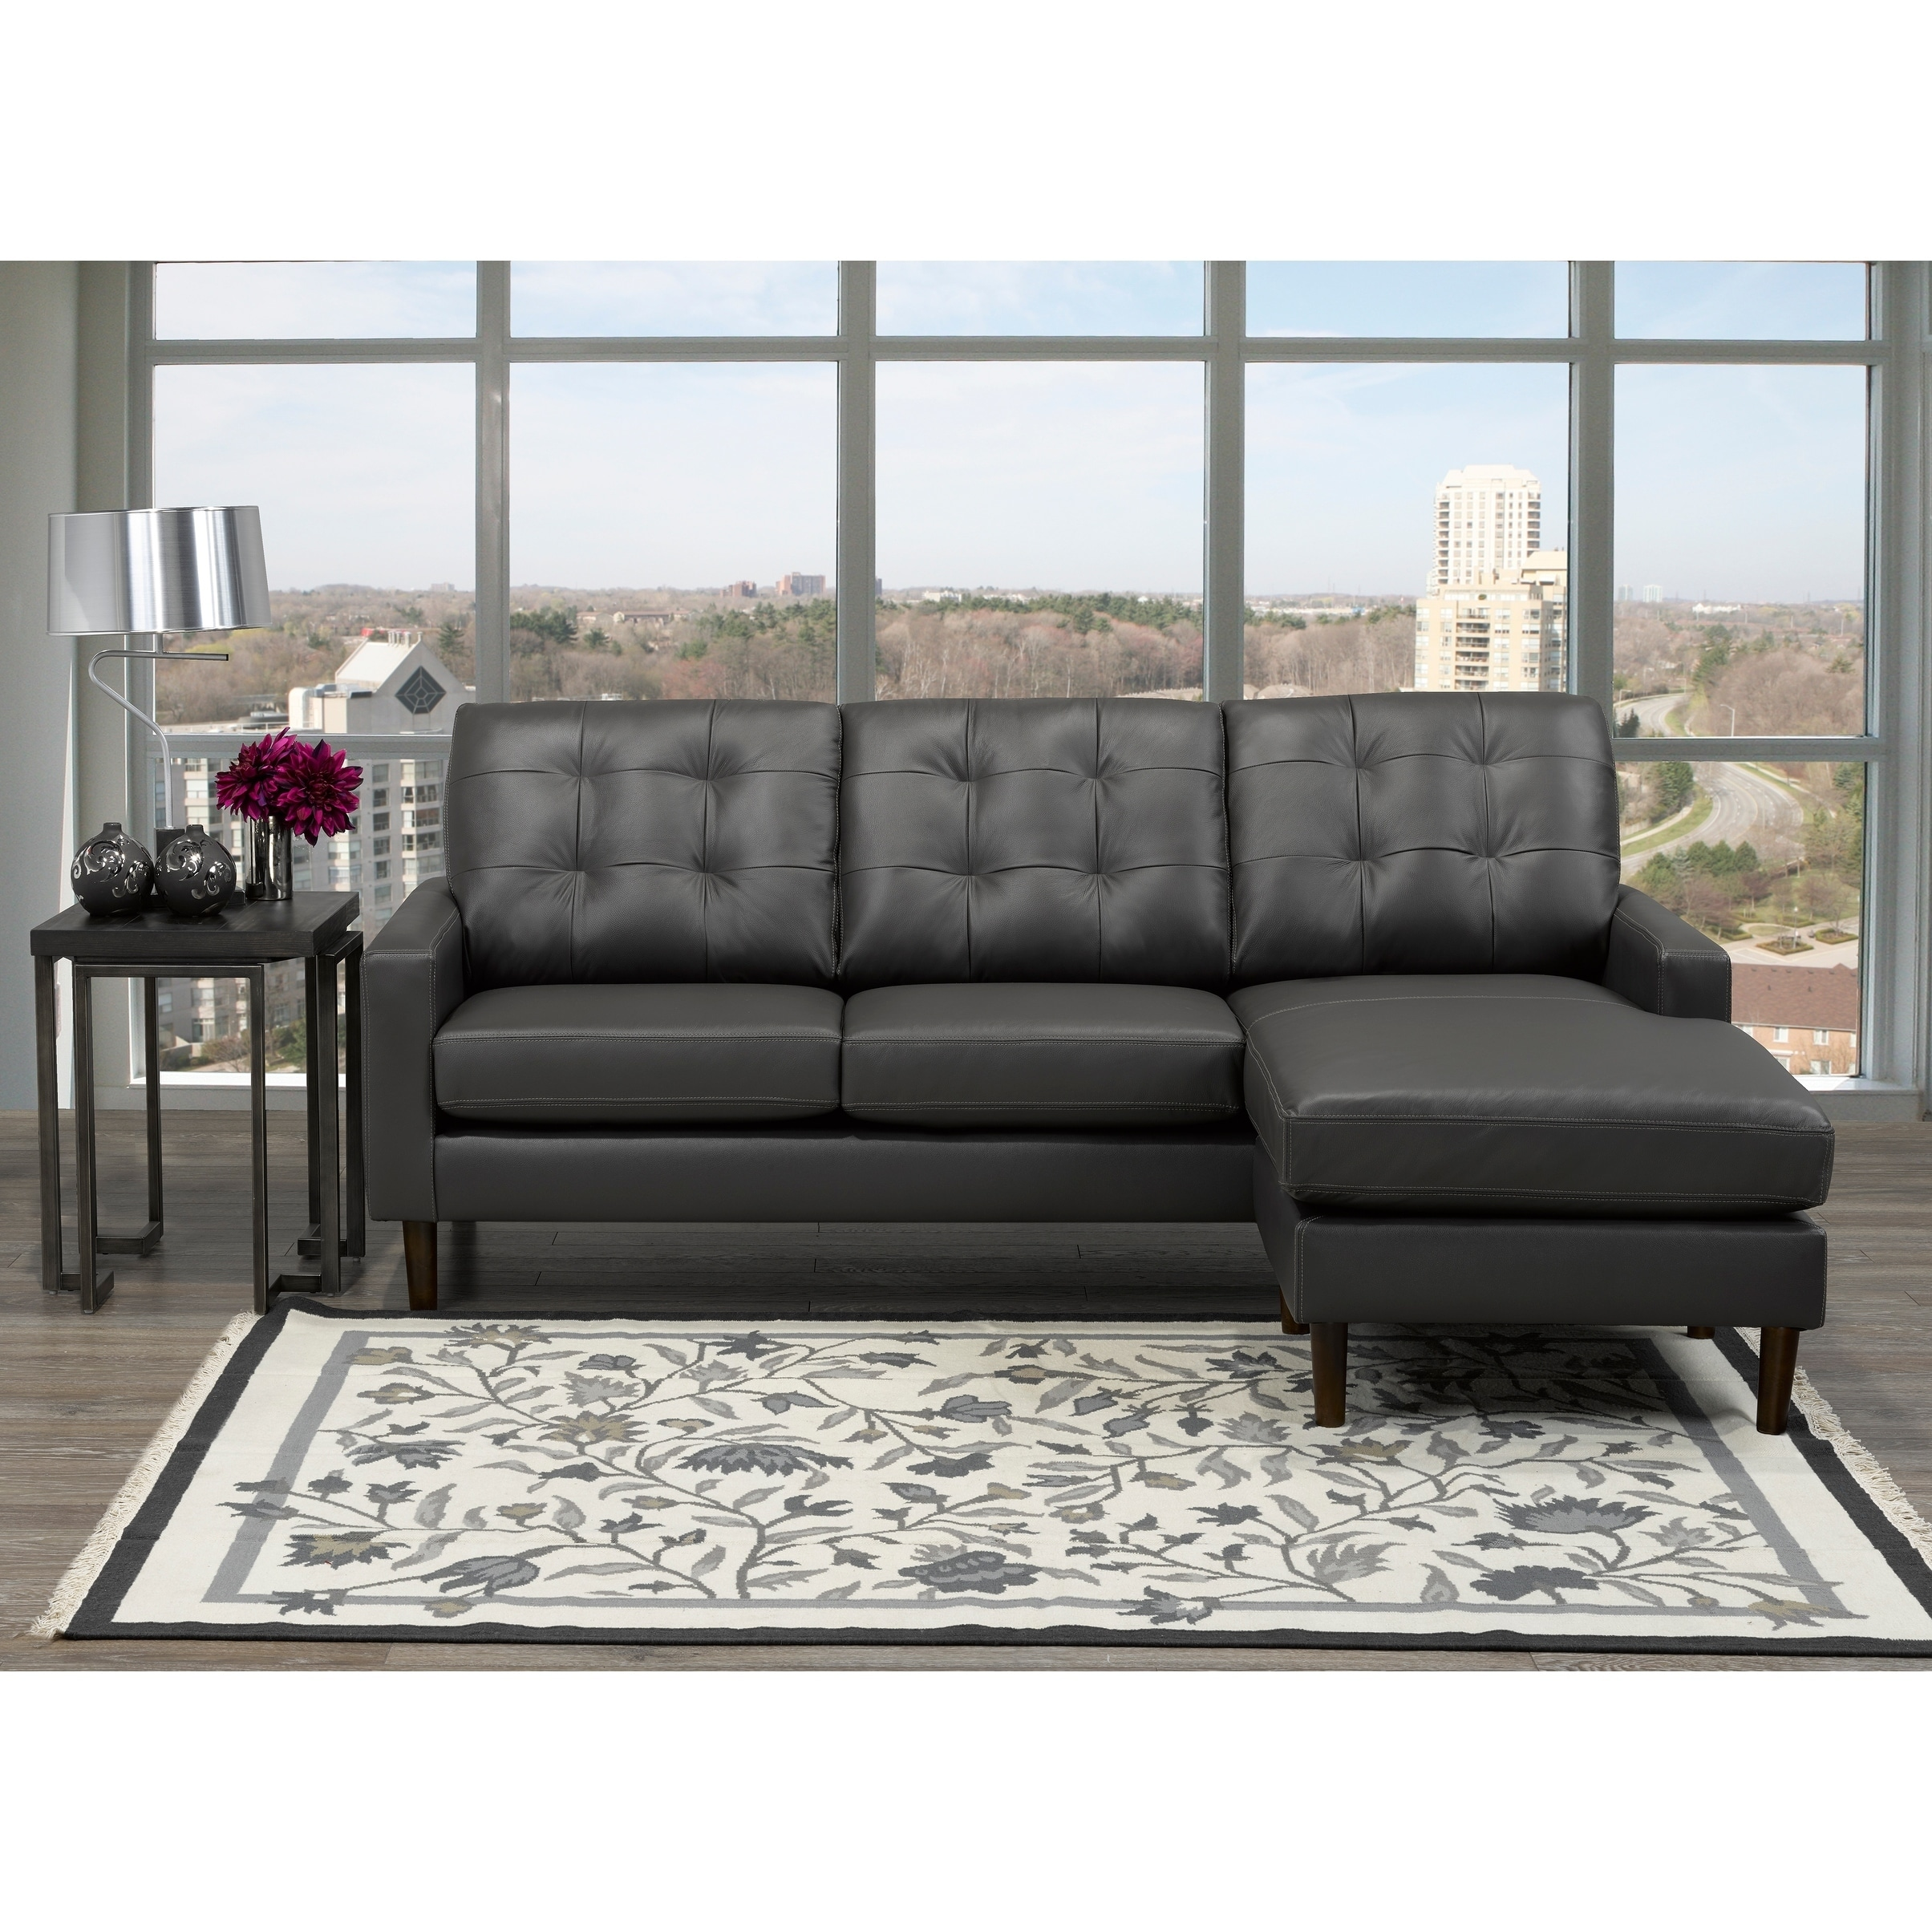 Chet Mid Century Modern Dark Grey Top Grain Leather Tufted Sectional Sofa Overstock 20847013